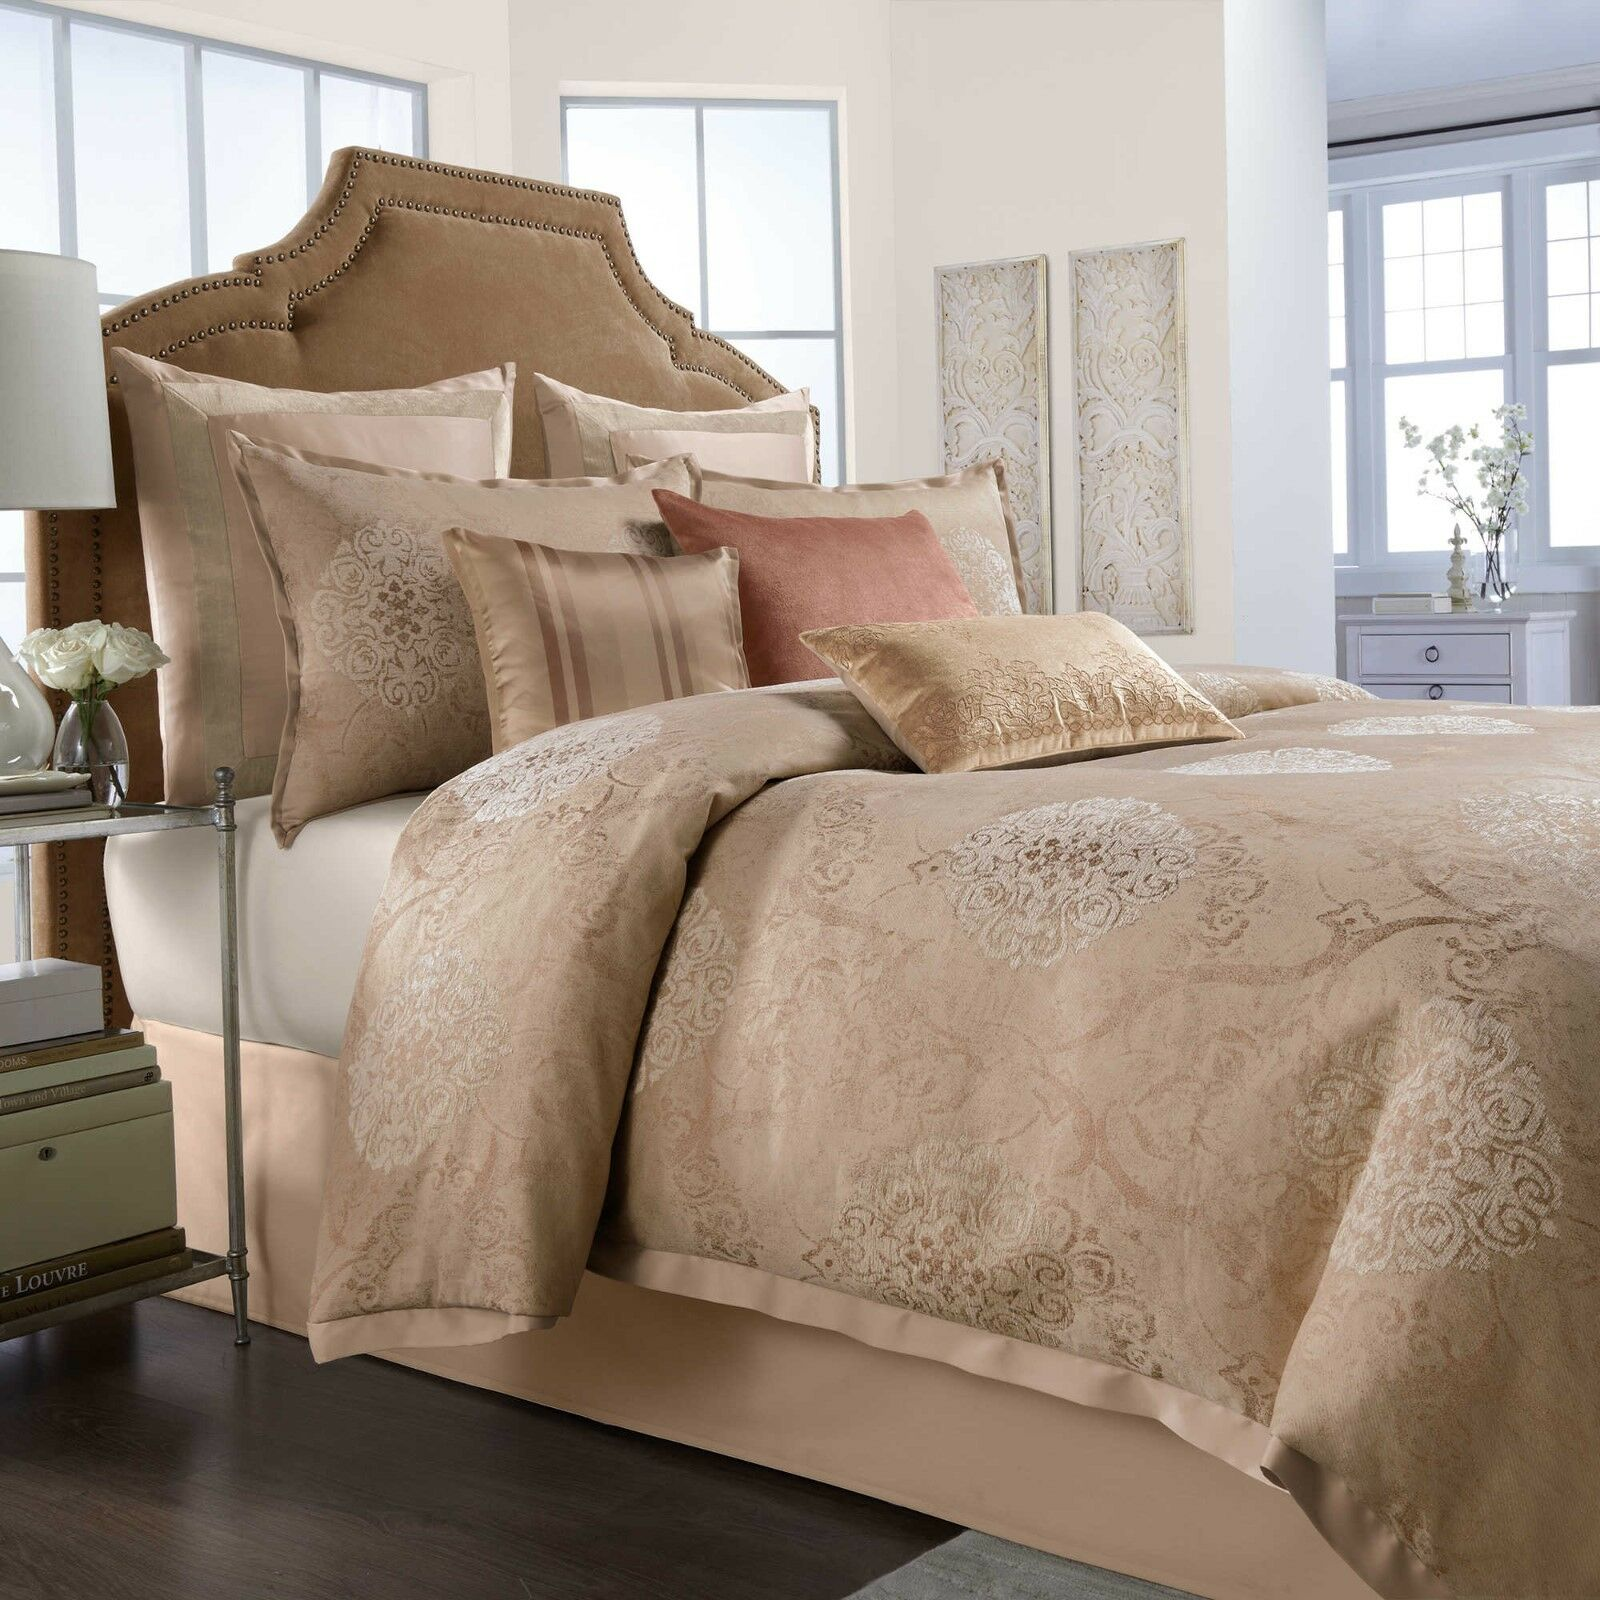 shams for modern pillowcases covers cheap sham head cases euro relax gold european bedroom linen your bed soft at pillows pillow